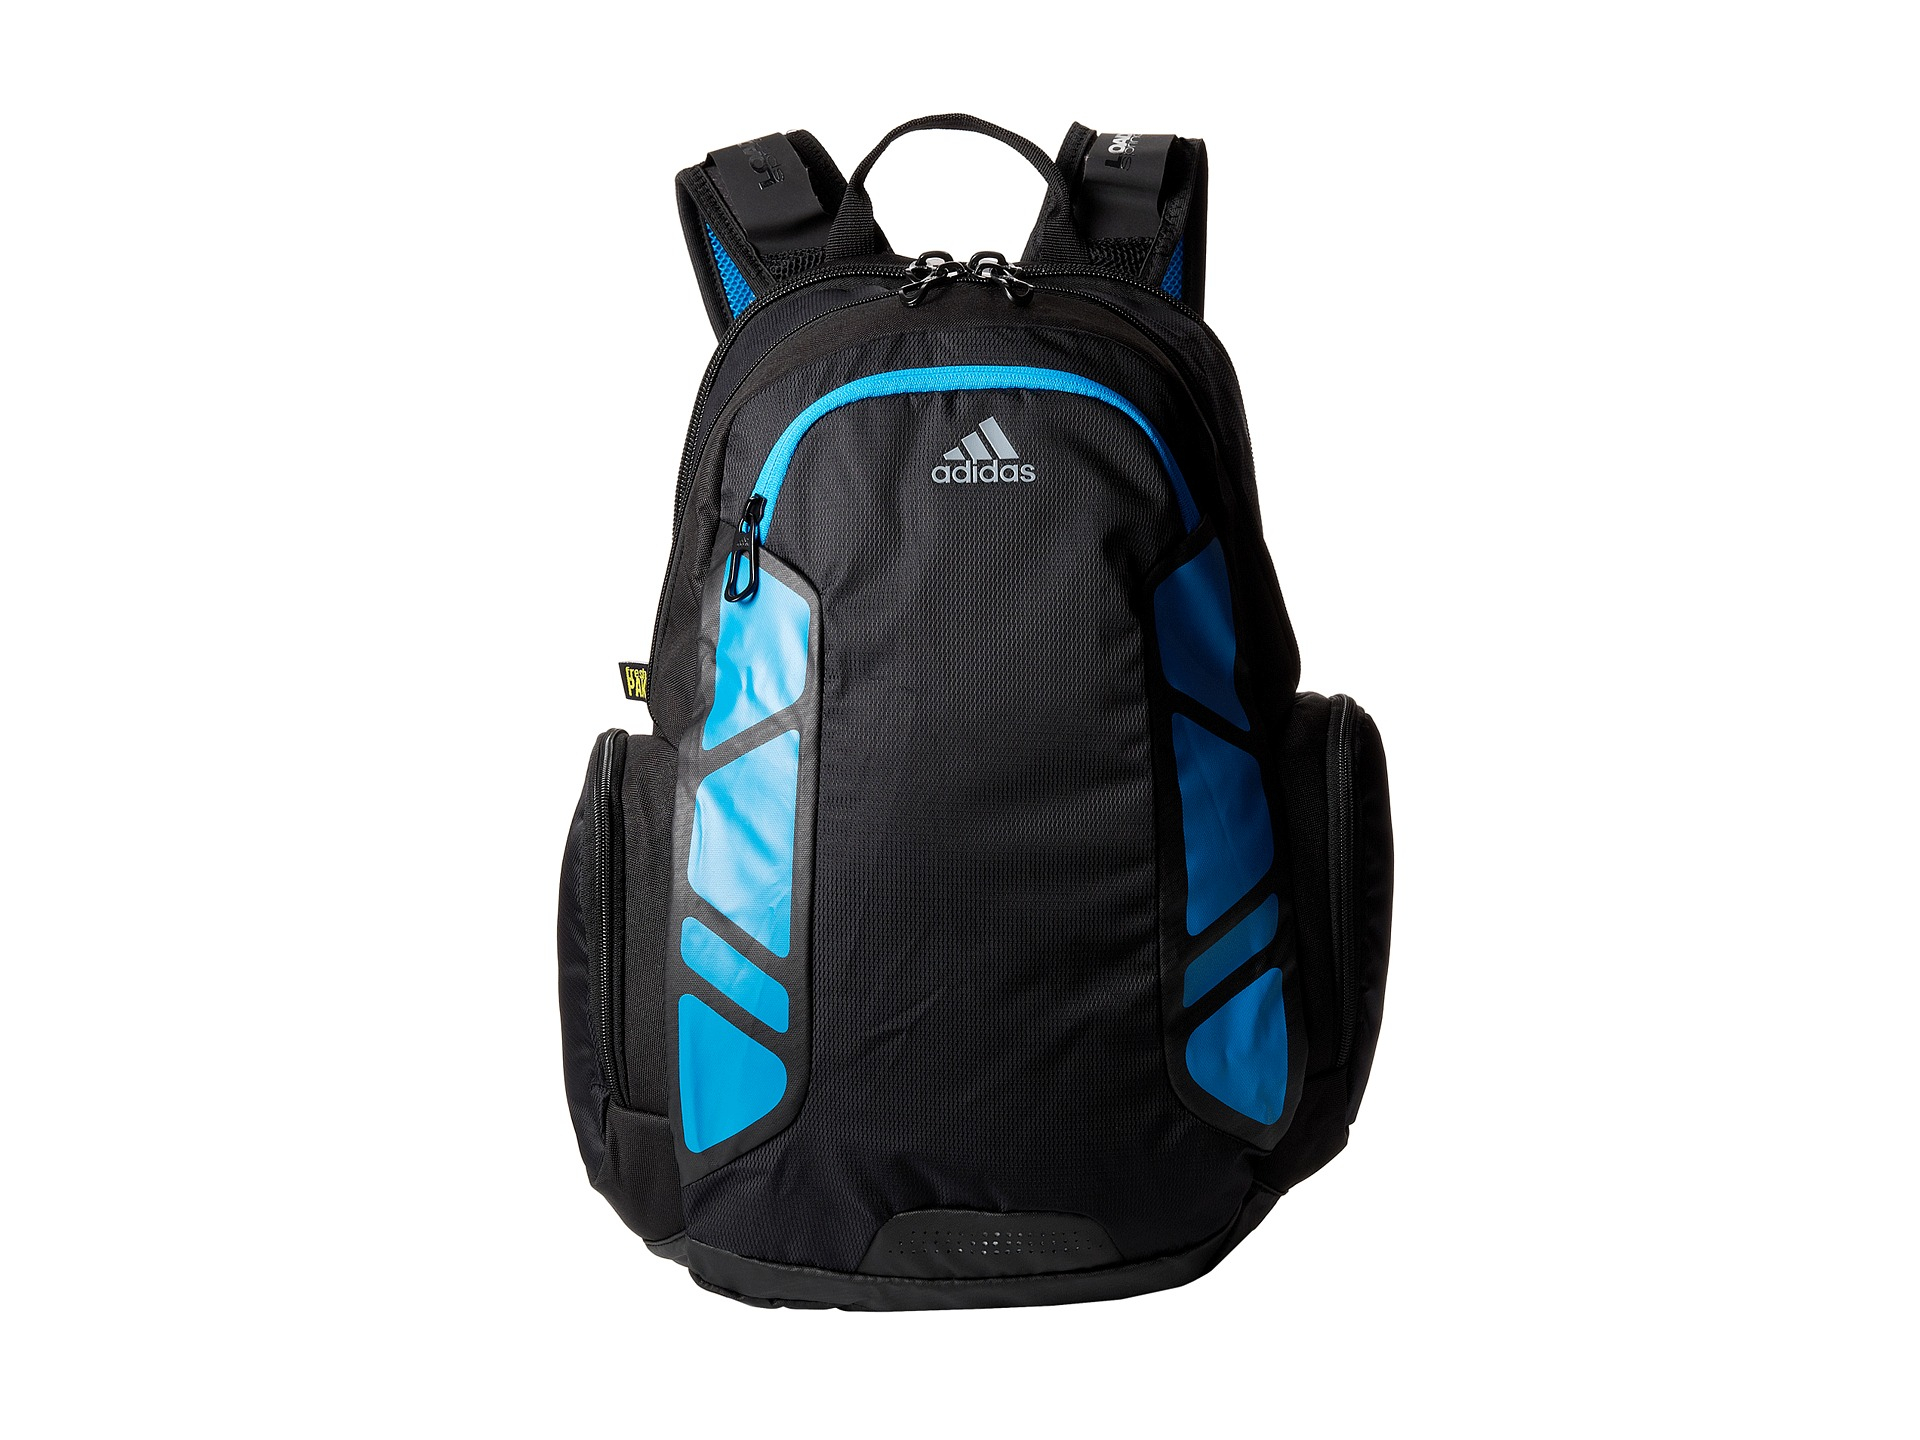 Adidas Climacool Speed Backpack in Blue (Black/Solar Blue